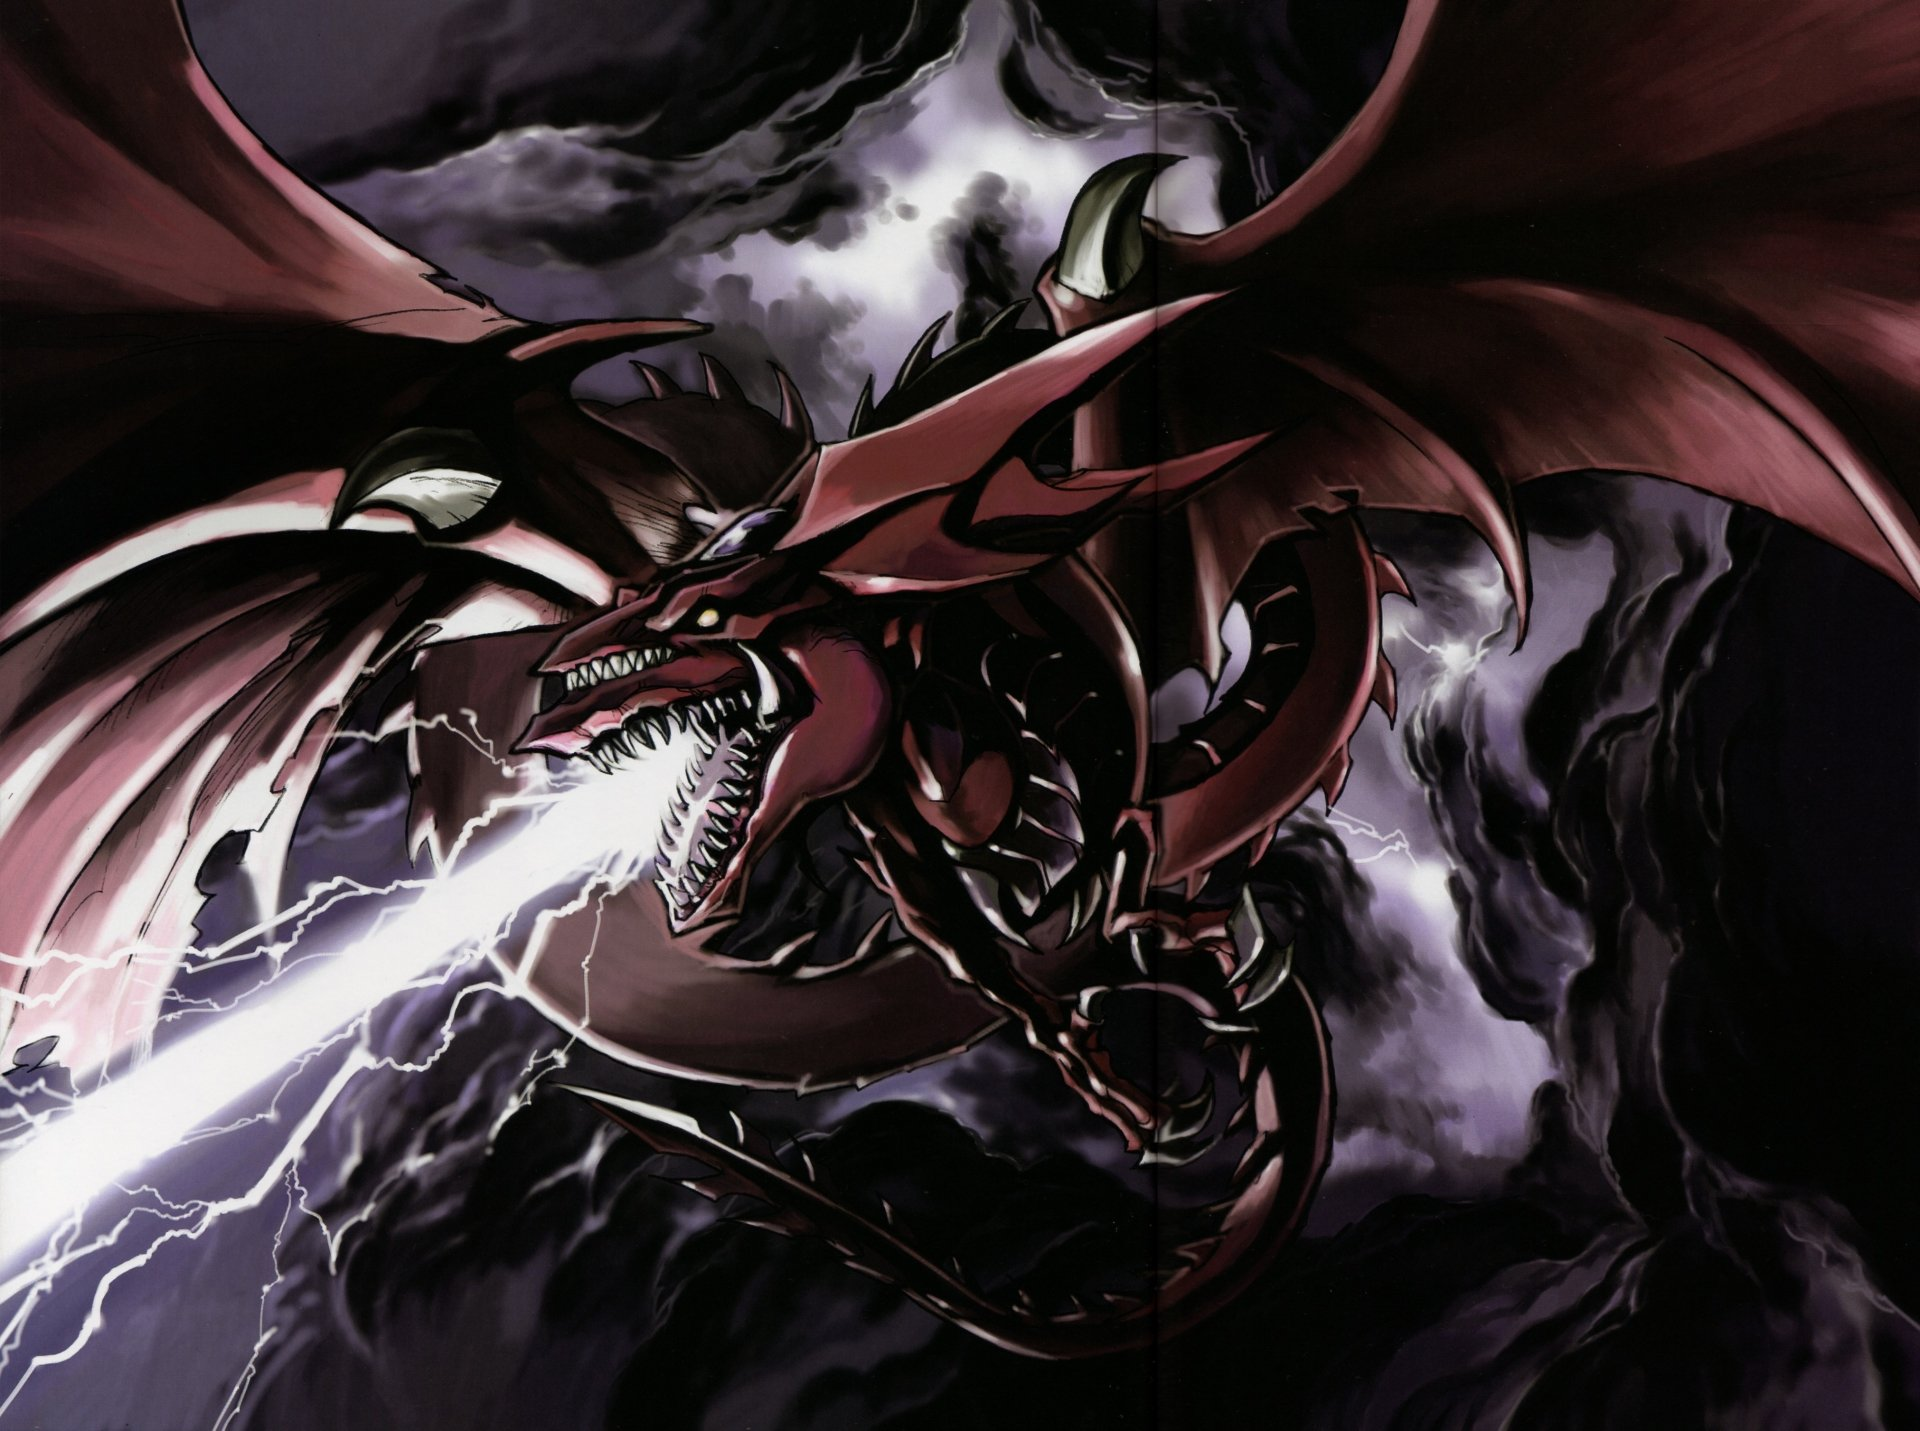 3 Slifer The Sky Dragon Fondos De Pantalla Hd Fondos De